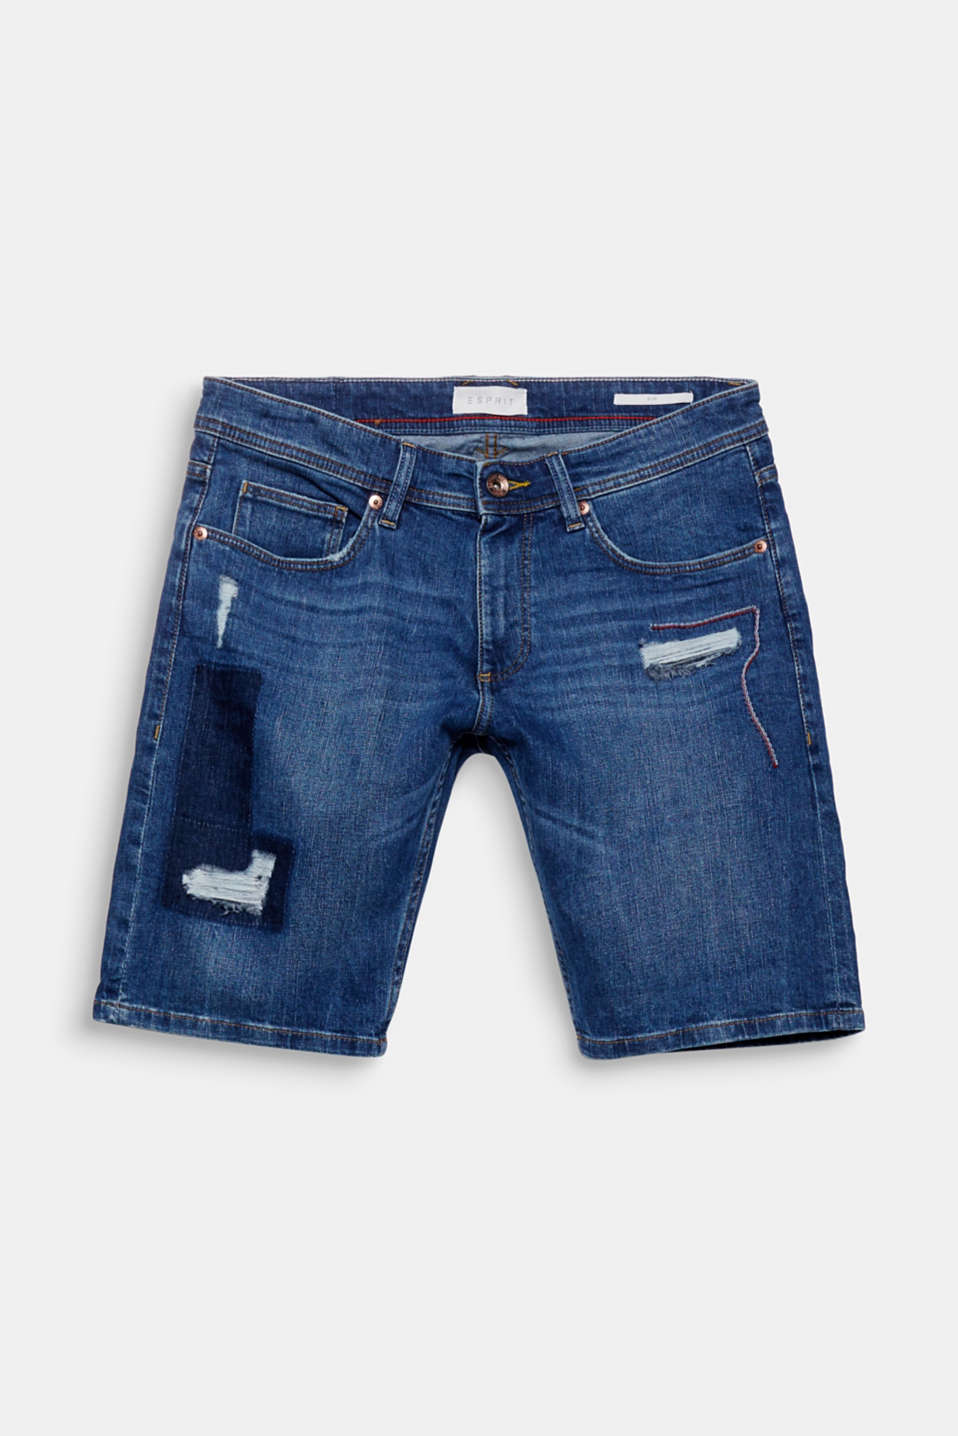 Distressed blue jeans and a white top – you've found the basis for your summer uniform with these denim shorts.